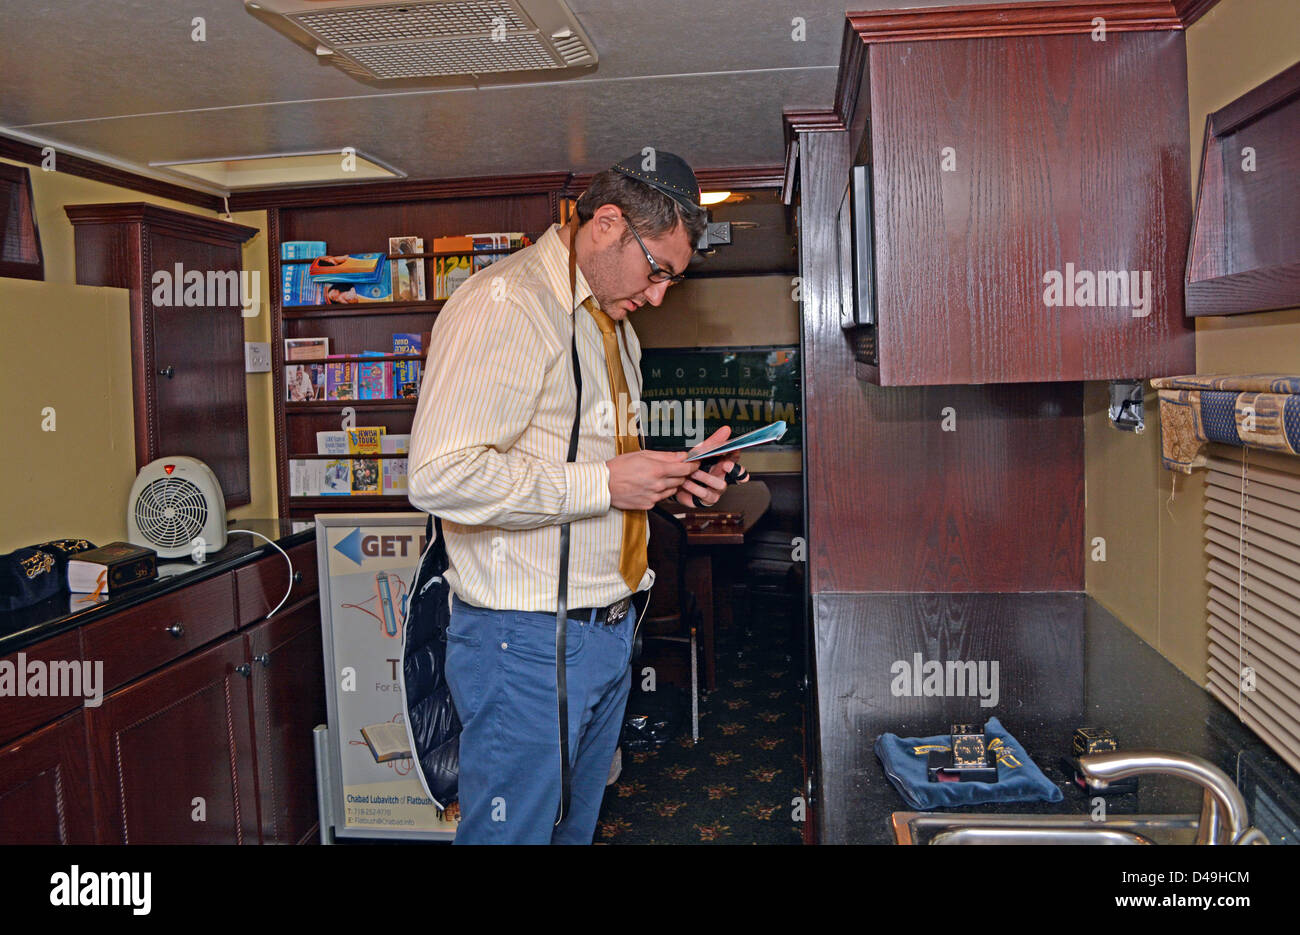 Inside a MItzvah tank in Brooklyn, a non-observant Jew puts on teffilin (phylacteries) and recites prayers. - Stock Image